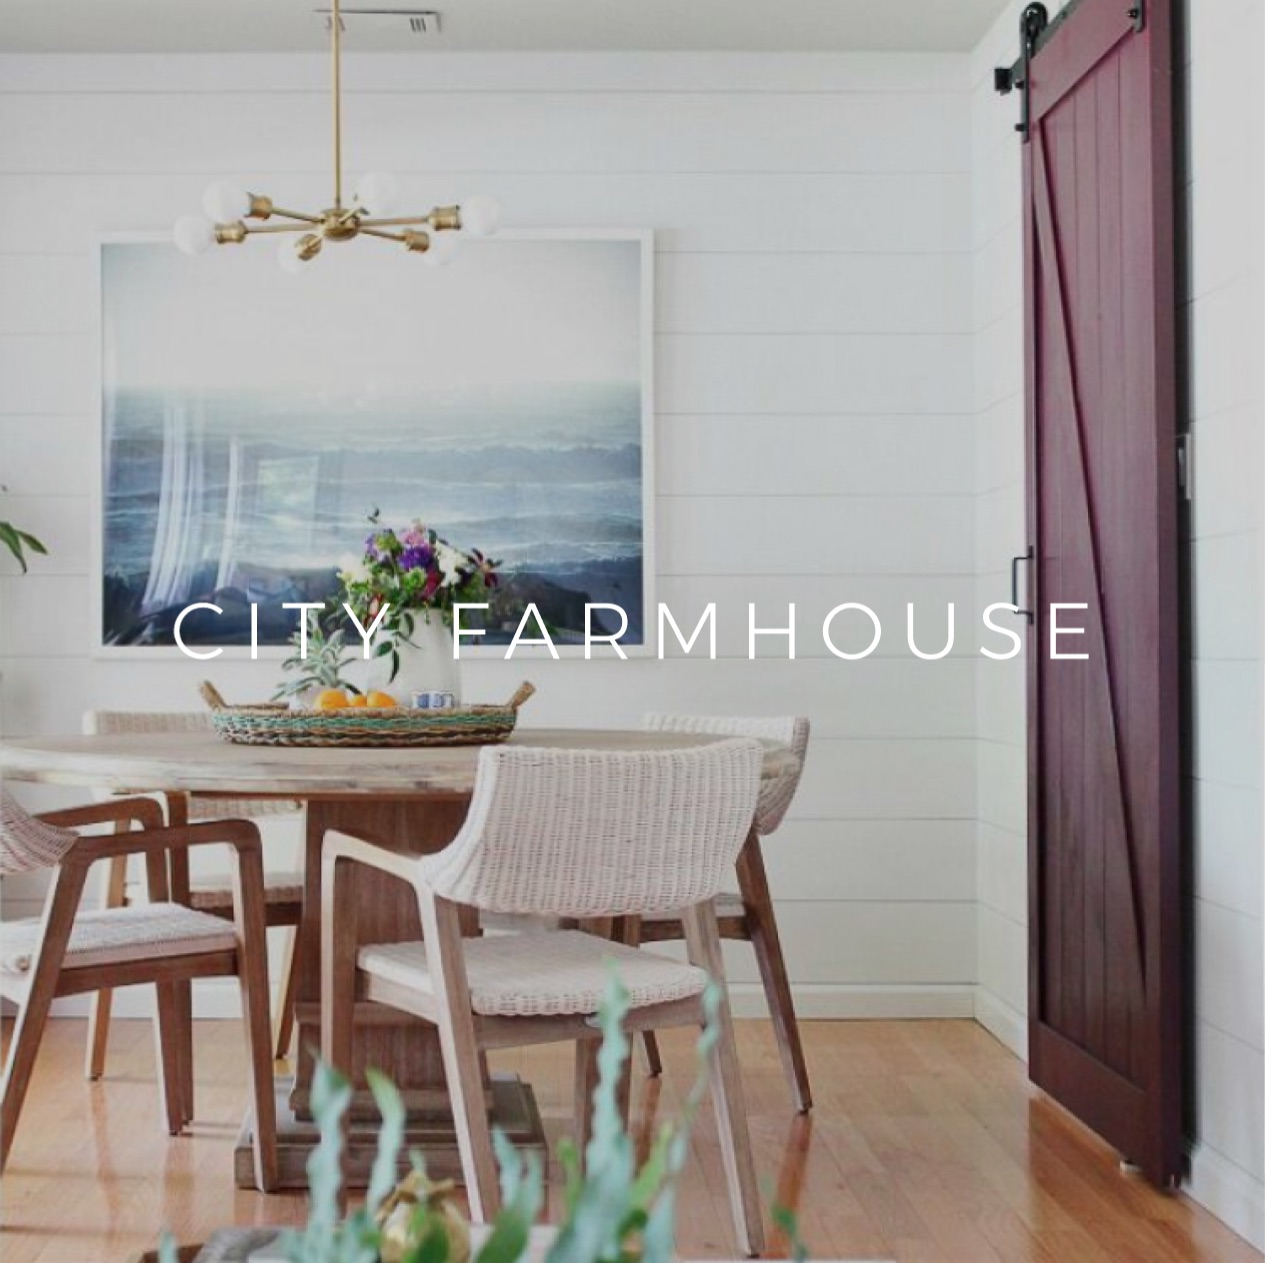 City Farmhouse Website & Ecommerce Design Interior Design